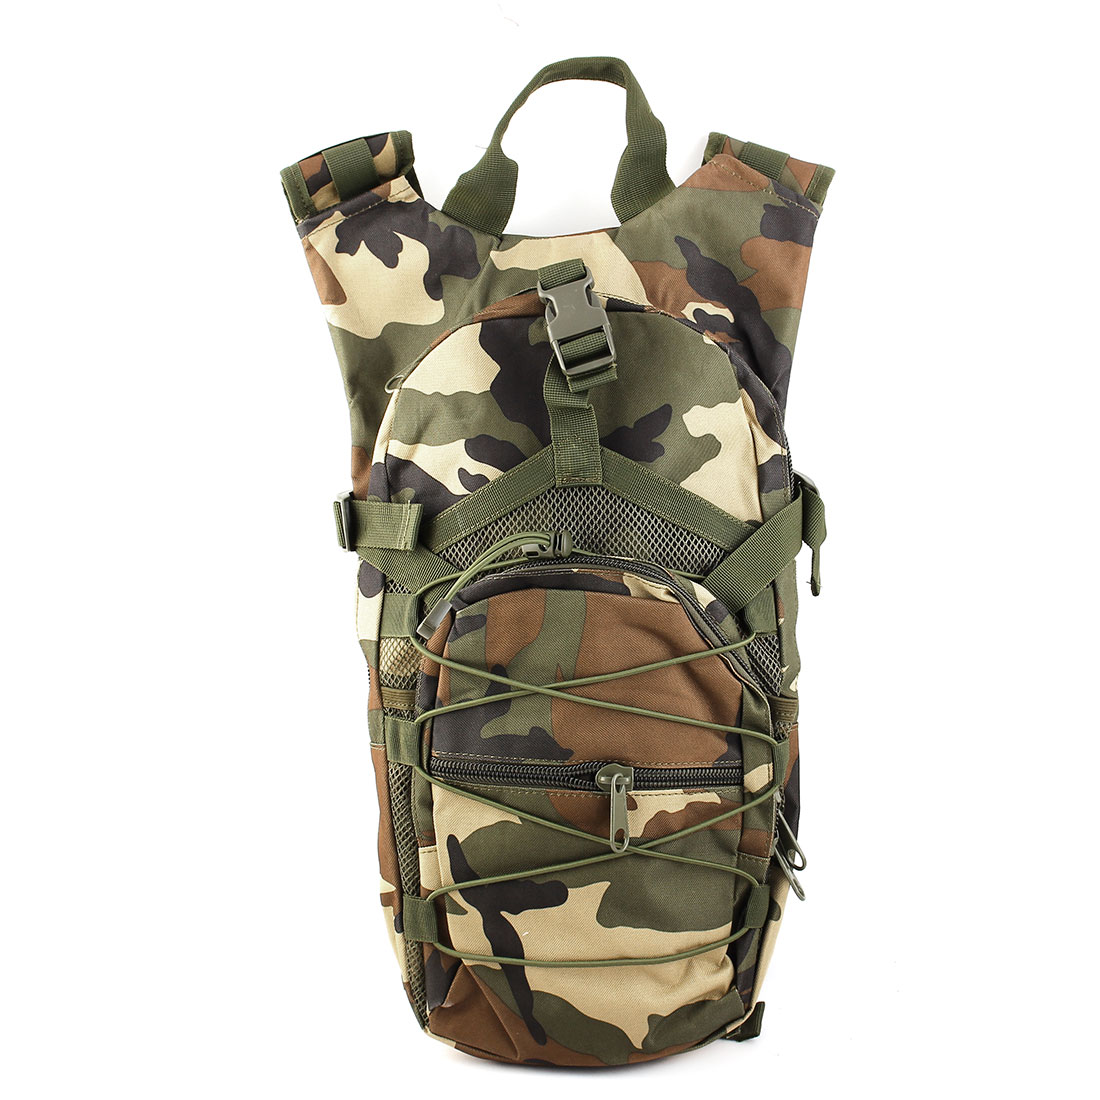 Outdoor Bicycle Traveling Hiking Camping Cycling Backpack Hydration Bladder Pack by Unique-Bargains